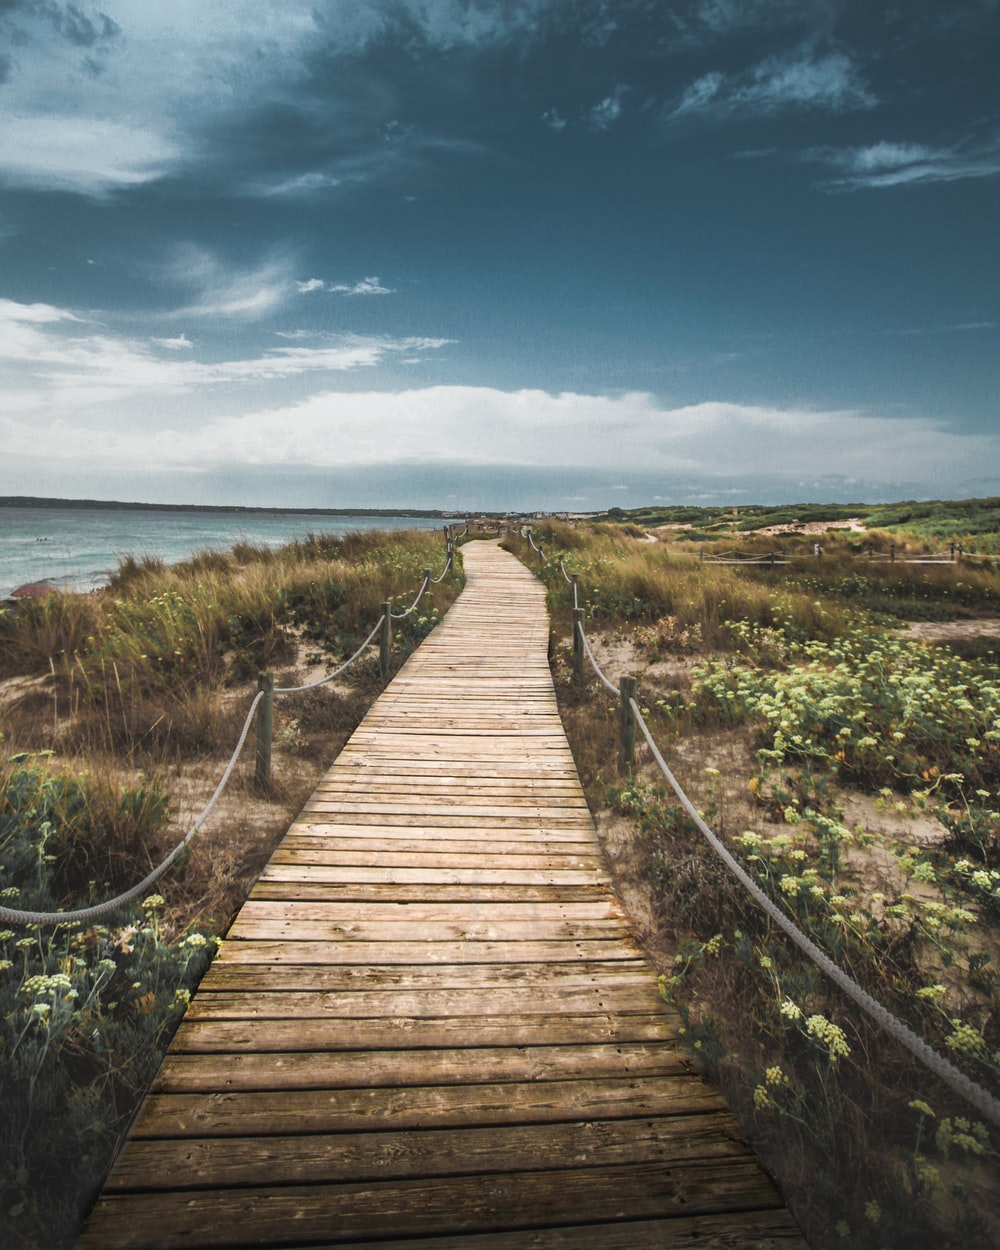 wooden pathway through seashore